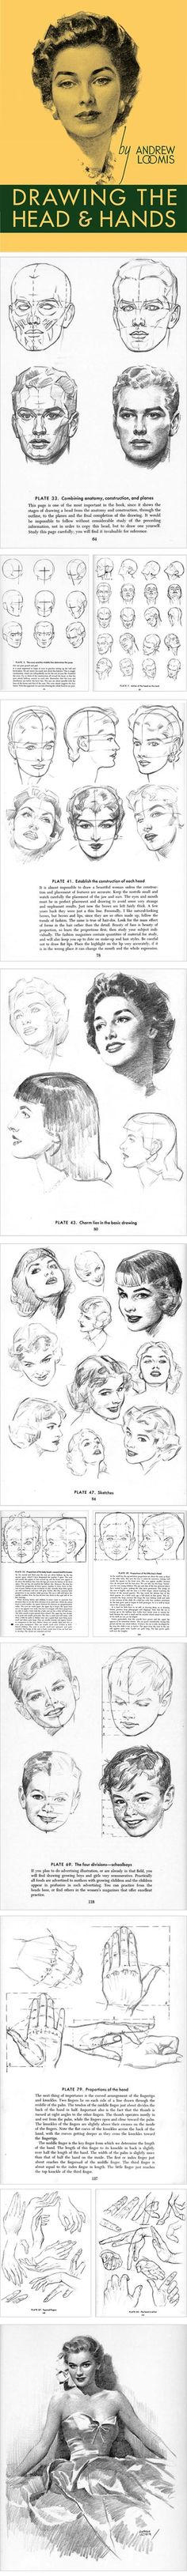 Lines and Colors: a blog about drawing, painting, illustration, comics, concept art and other visual arts » Drawing the Head and Hands, Andrew Loomis via PinCG.com